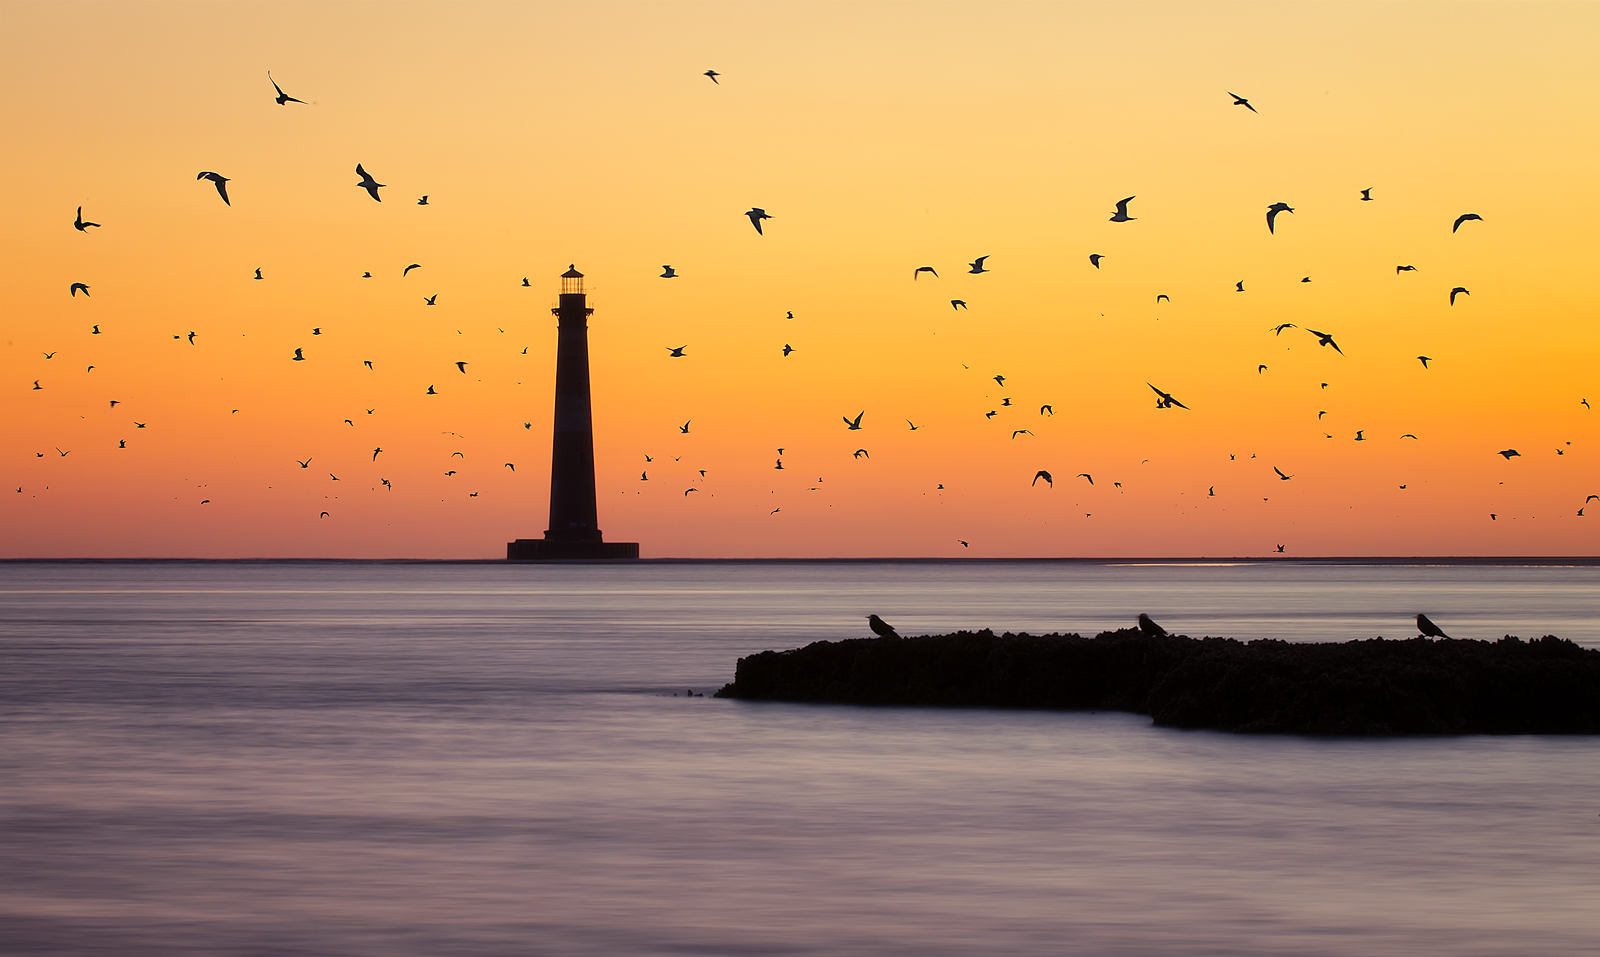 """FINALIST Professional category: Swarm by Taylor Franta; """"The birds come to life as the sun begins to warm the sky near the Morris Island Lighthouse on 3/3/16.  During low tide a sandbar forms out by the lighthouse and the birds seem to enjoy resting their wings on this sandbar. As the tide comes in, however, they are forced to somewhere else to rest."""""""